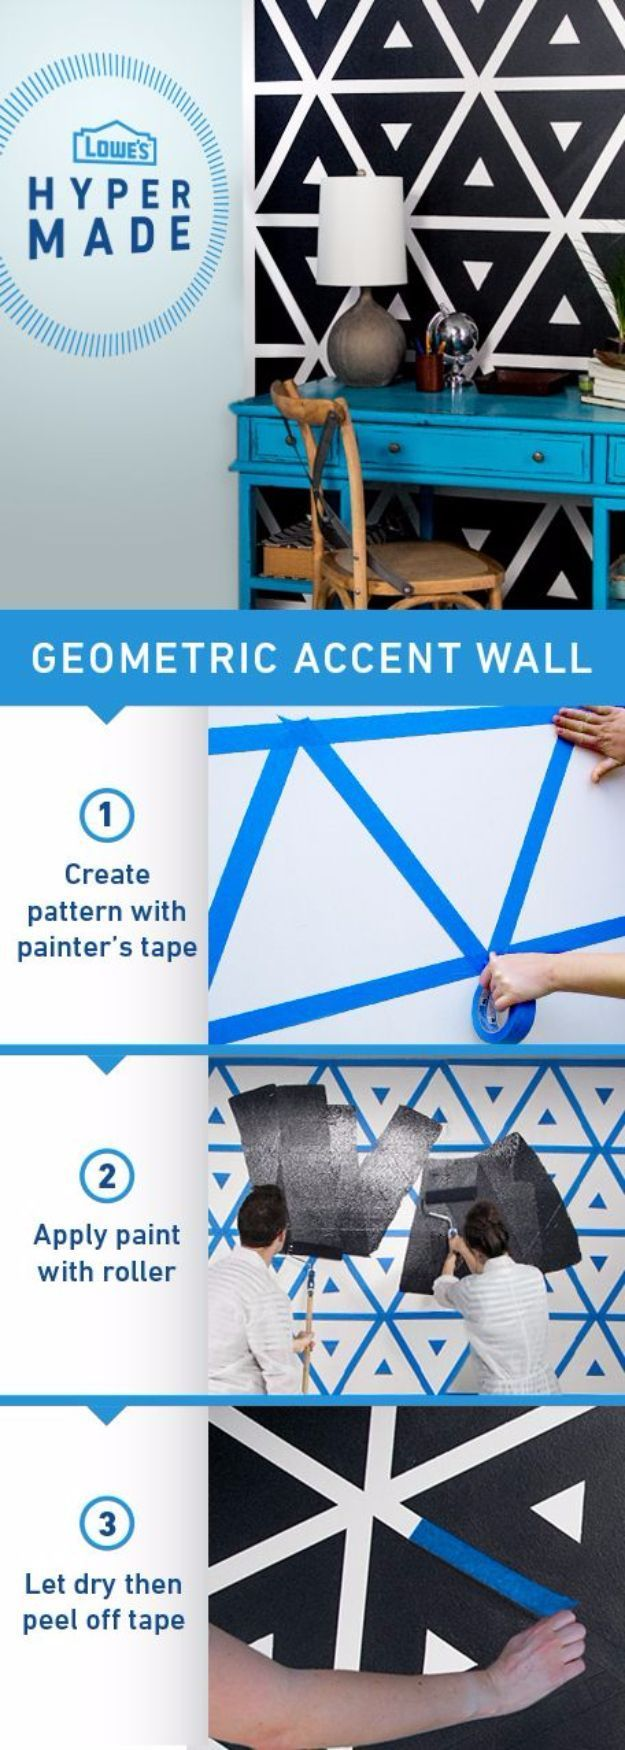 DIY Ideas for Painting Walls - Geometric Accent Wall - Cool Ways To Paint Walls - Techniques, Tips, Stencils, Tutorials, Fun Colors and Creative Designs for Living Room, Bedroom, Kids Room, Bathroom and Kitchen http://diyprojectsforteens.com/cool-ways-to-